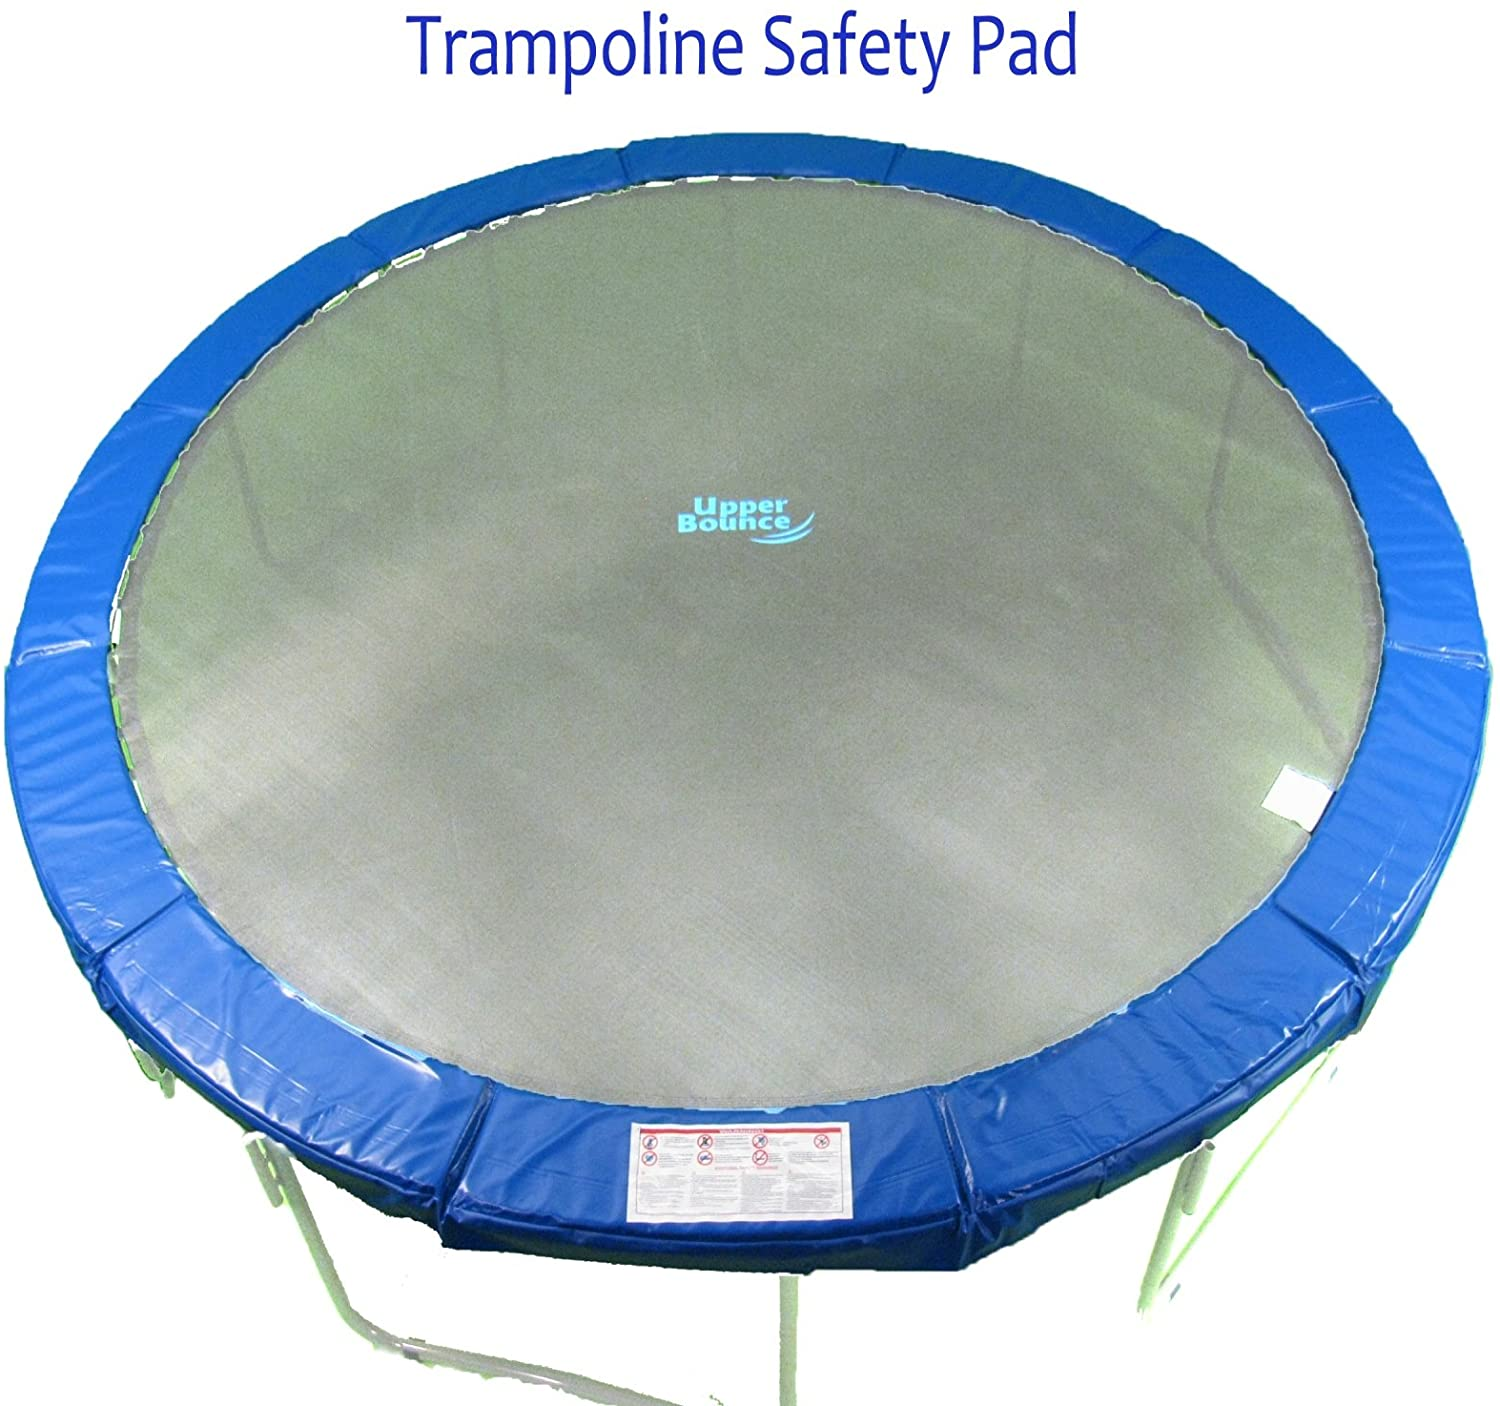 Upper Bounce Trampoline Safety Pad Fits for Skywalker Model # SWTC1514